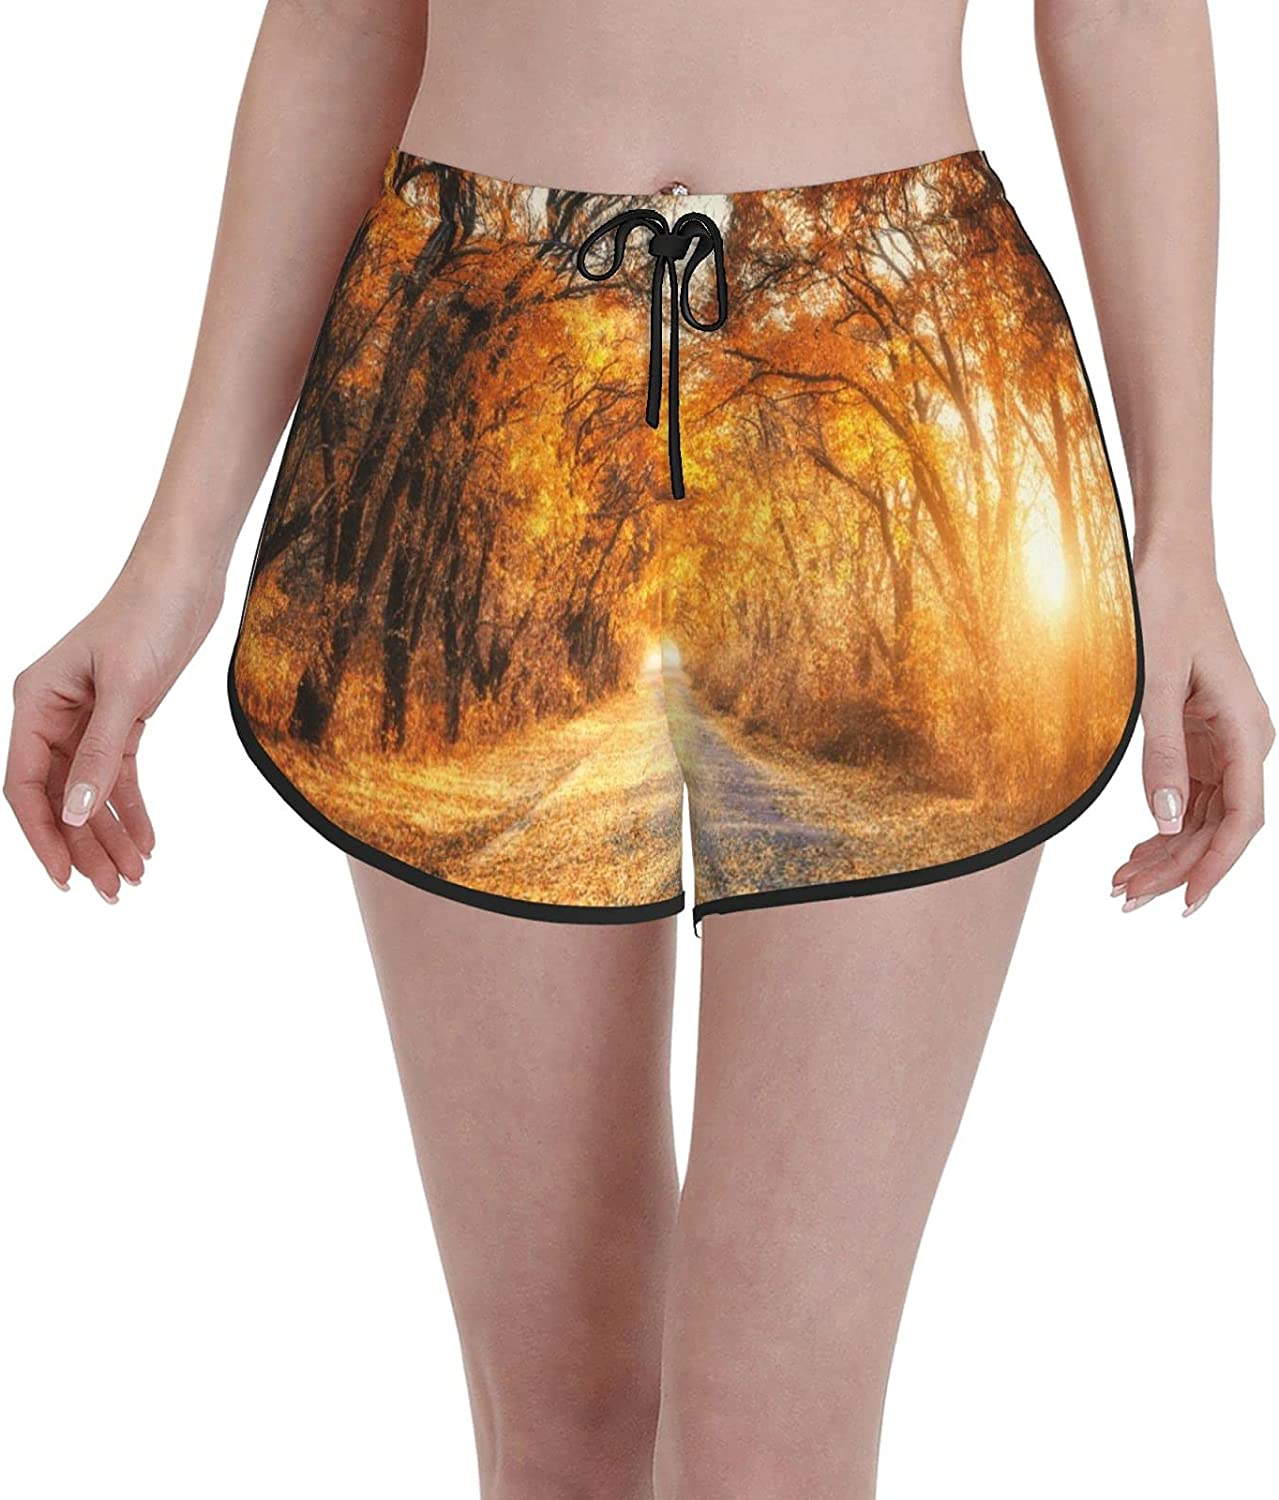 Women's Max Industry No. 1 44% OFF Girl's Swim Trunks Autumn with Forest Country Road